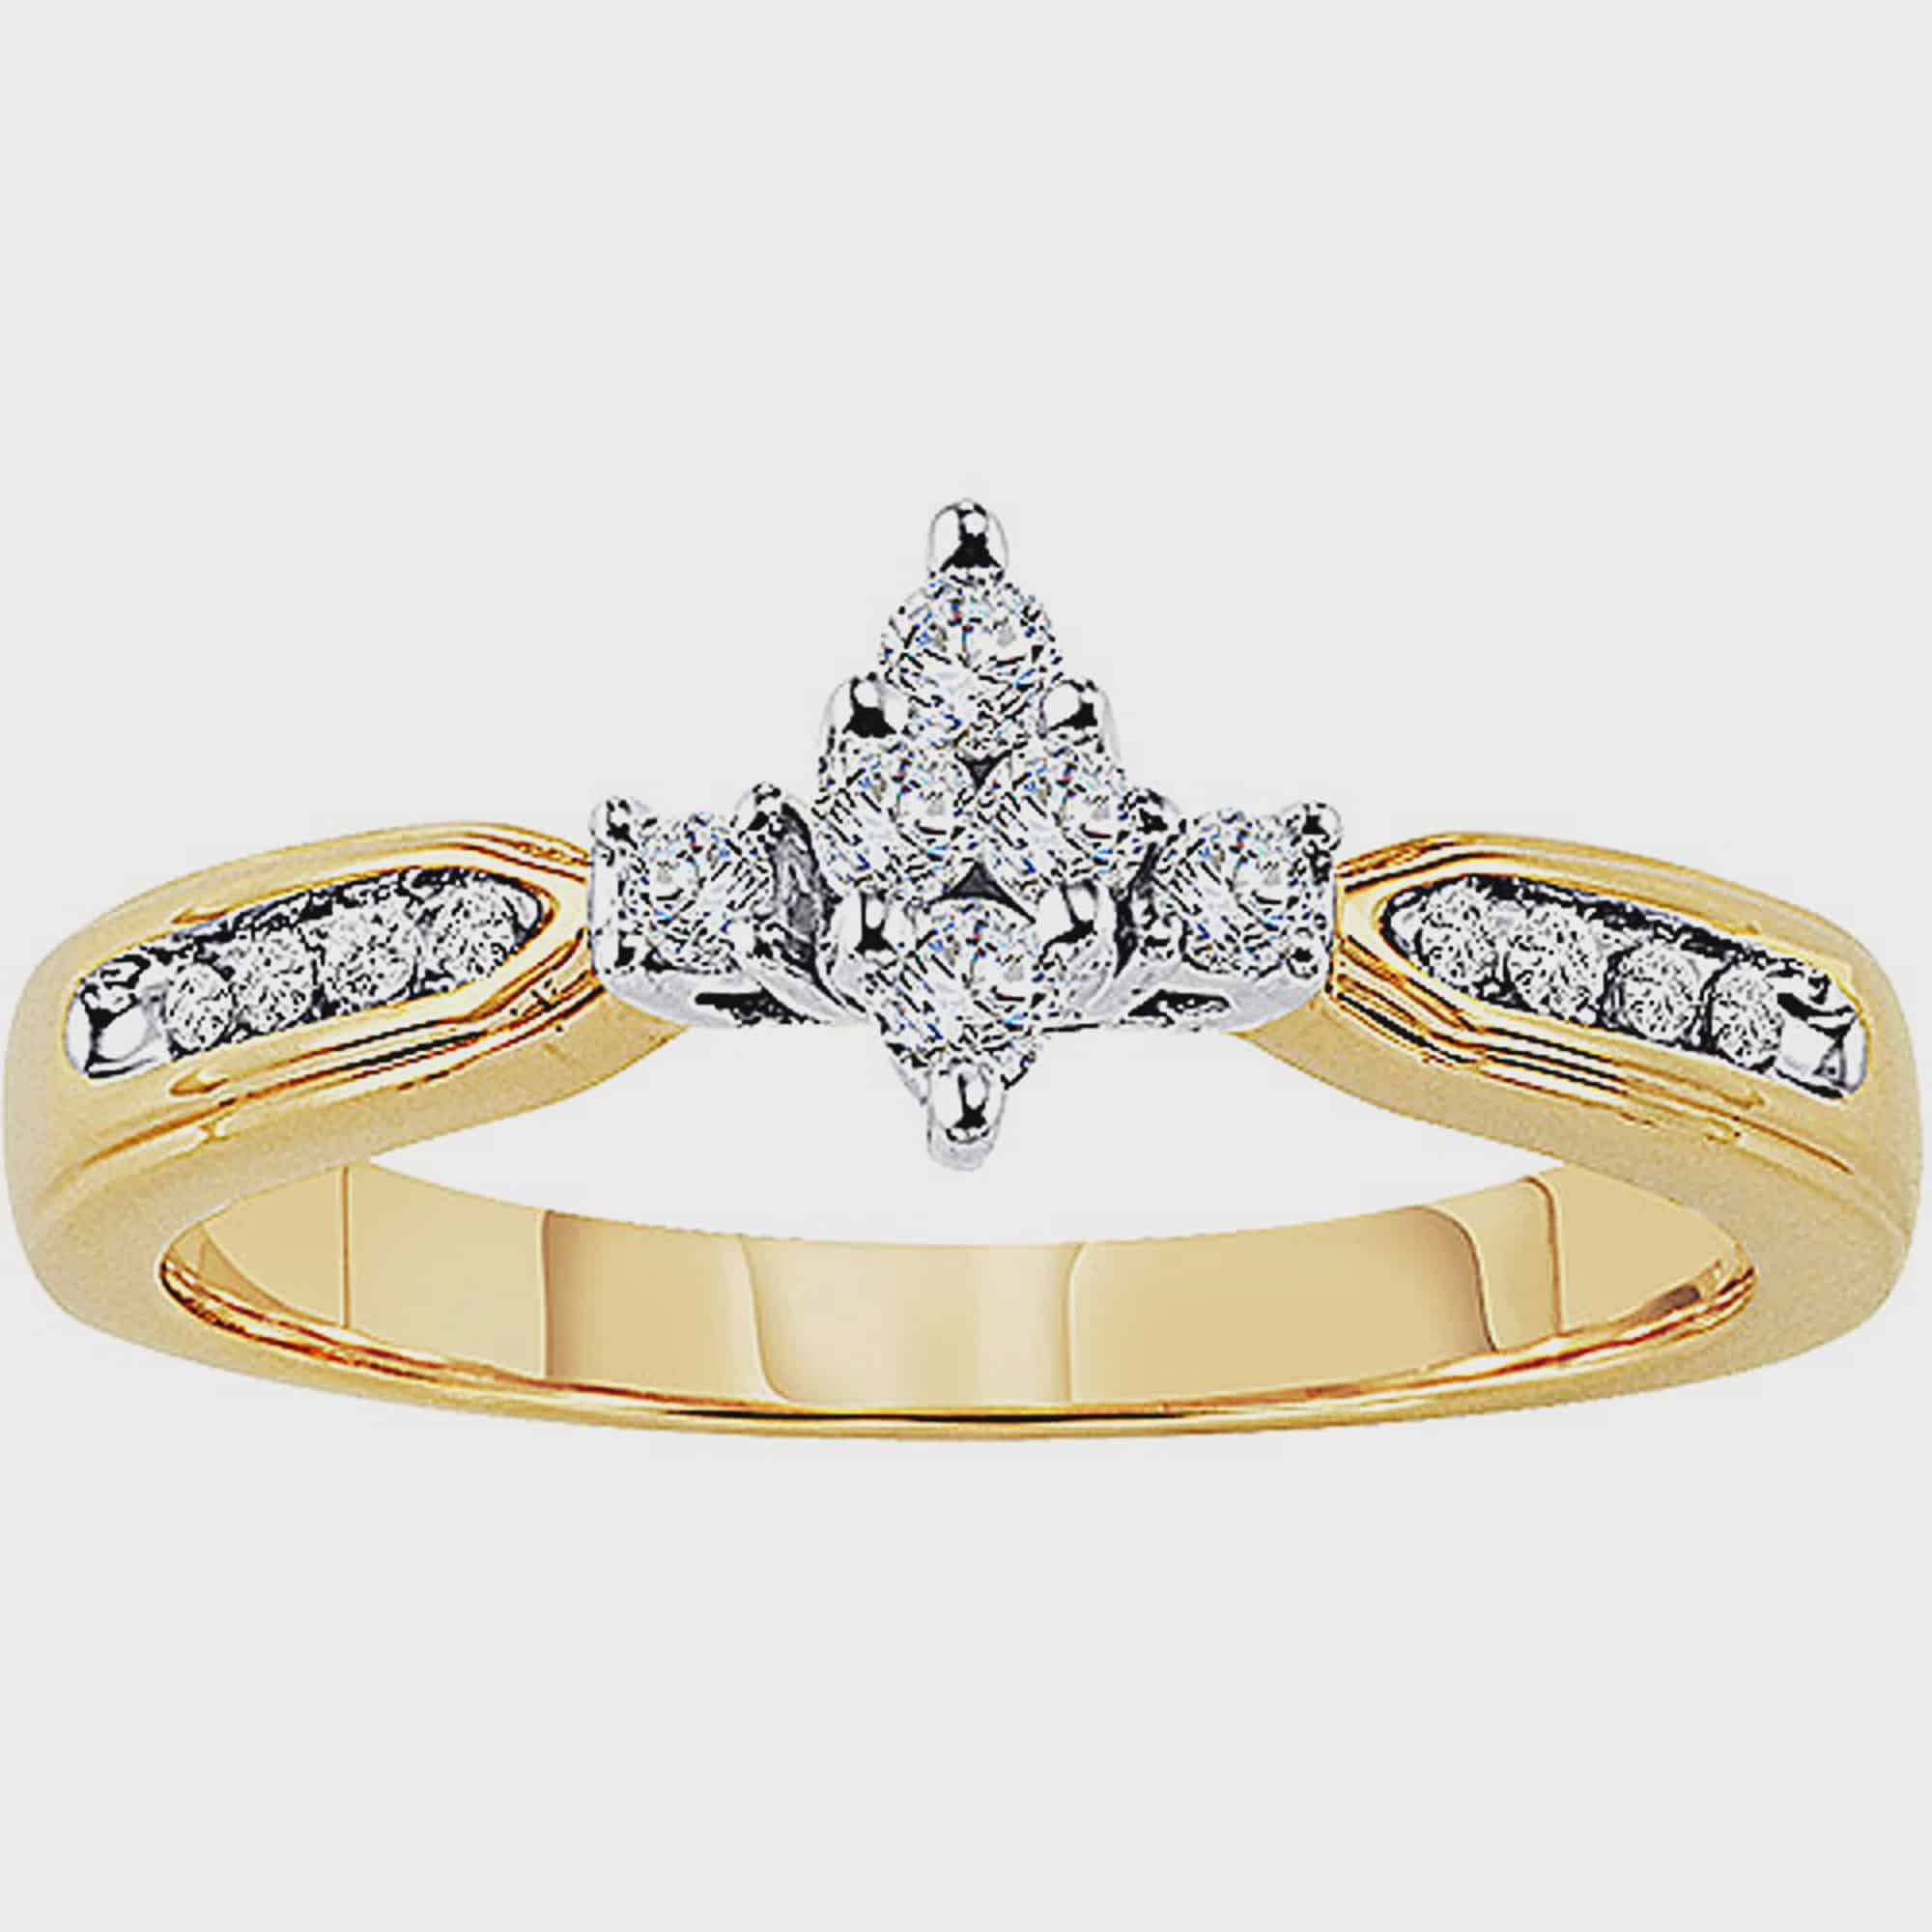 igi ring set carat products baguette wedding clarity certified diamond gold channel band